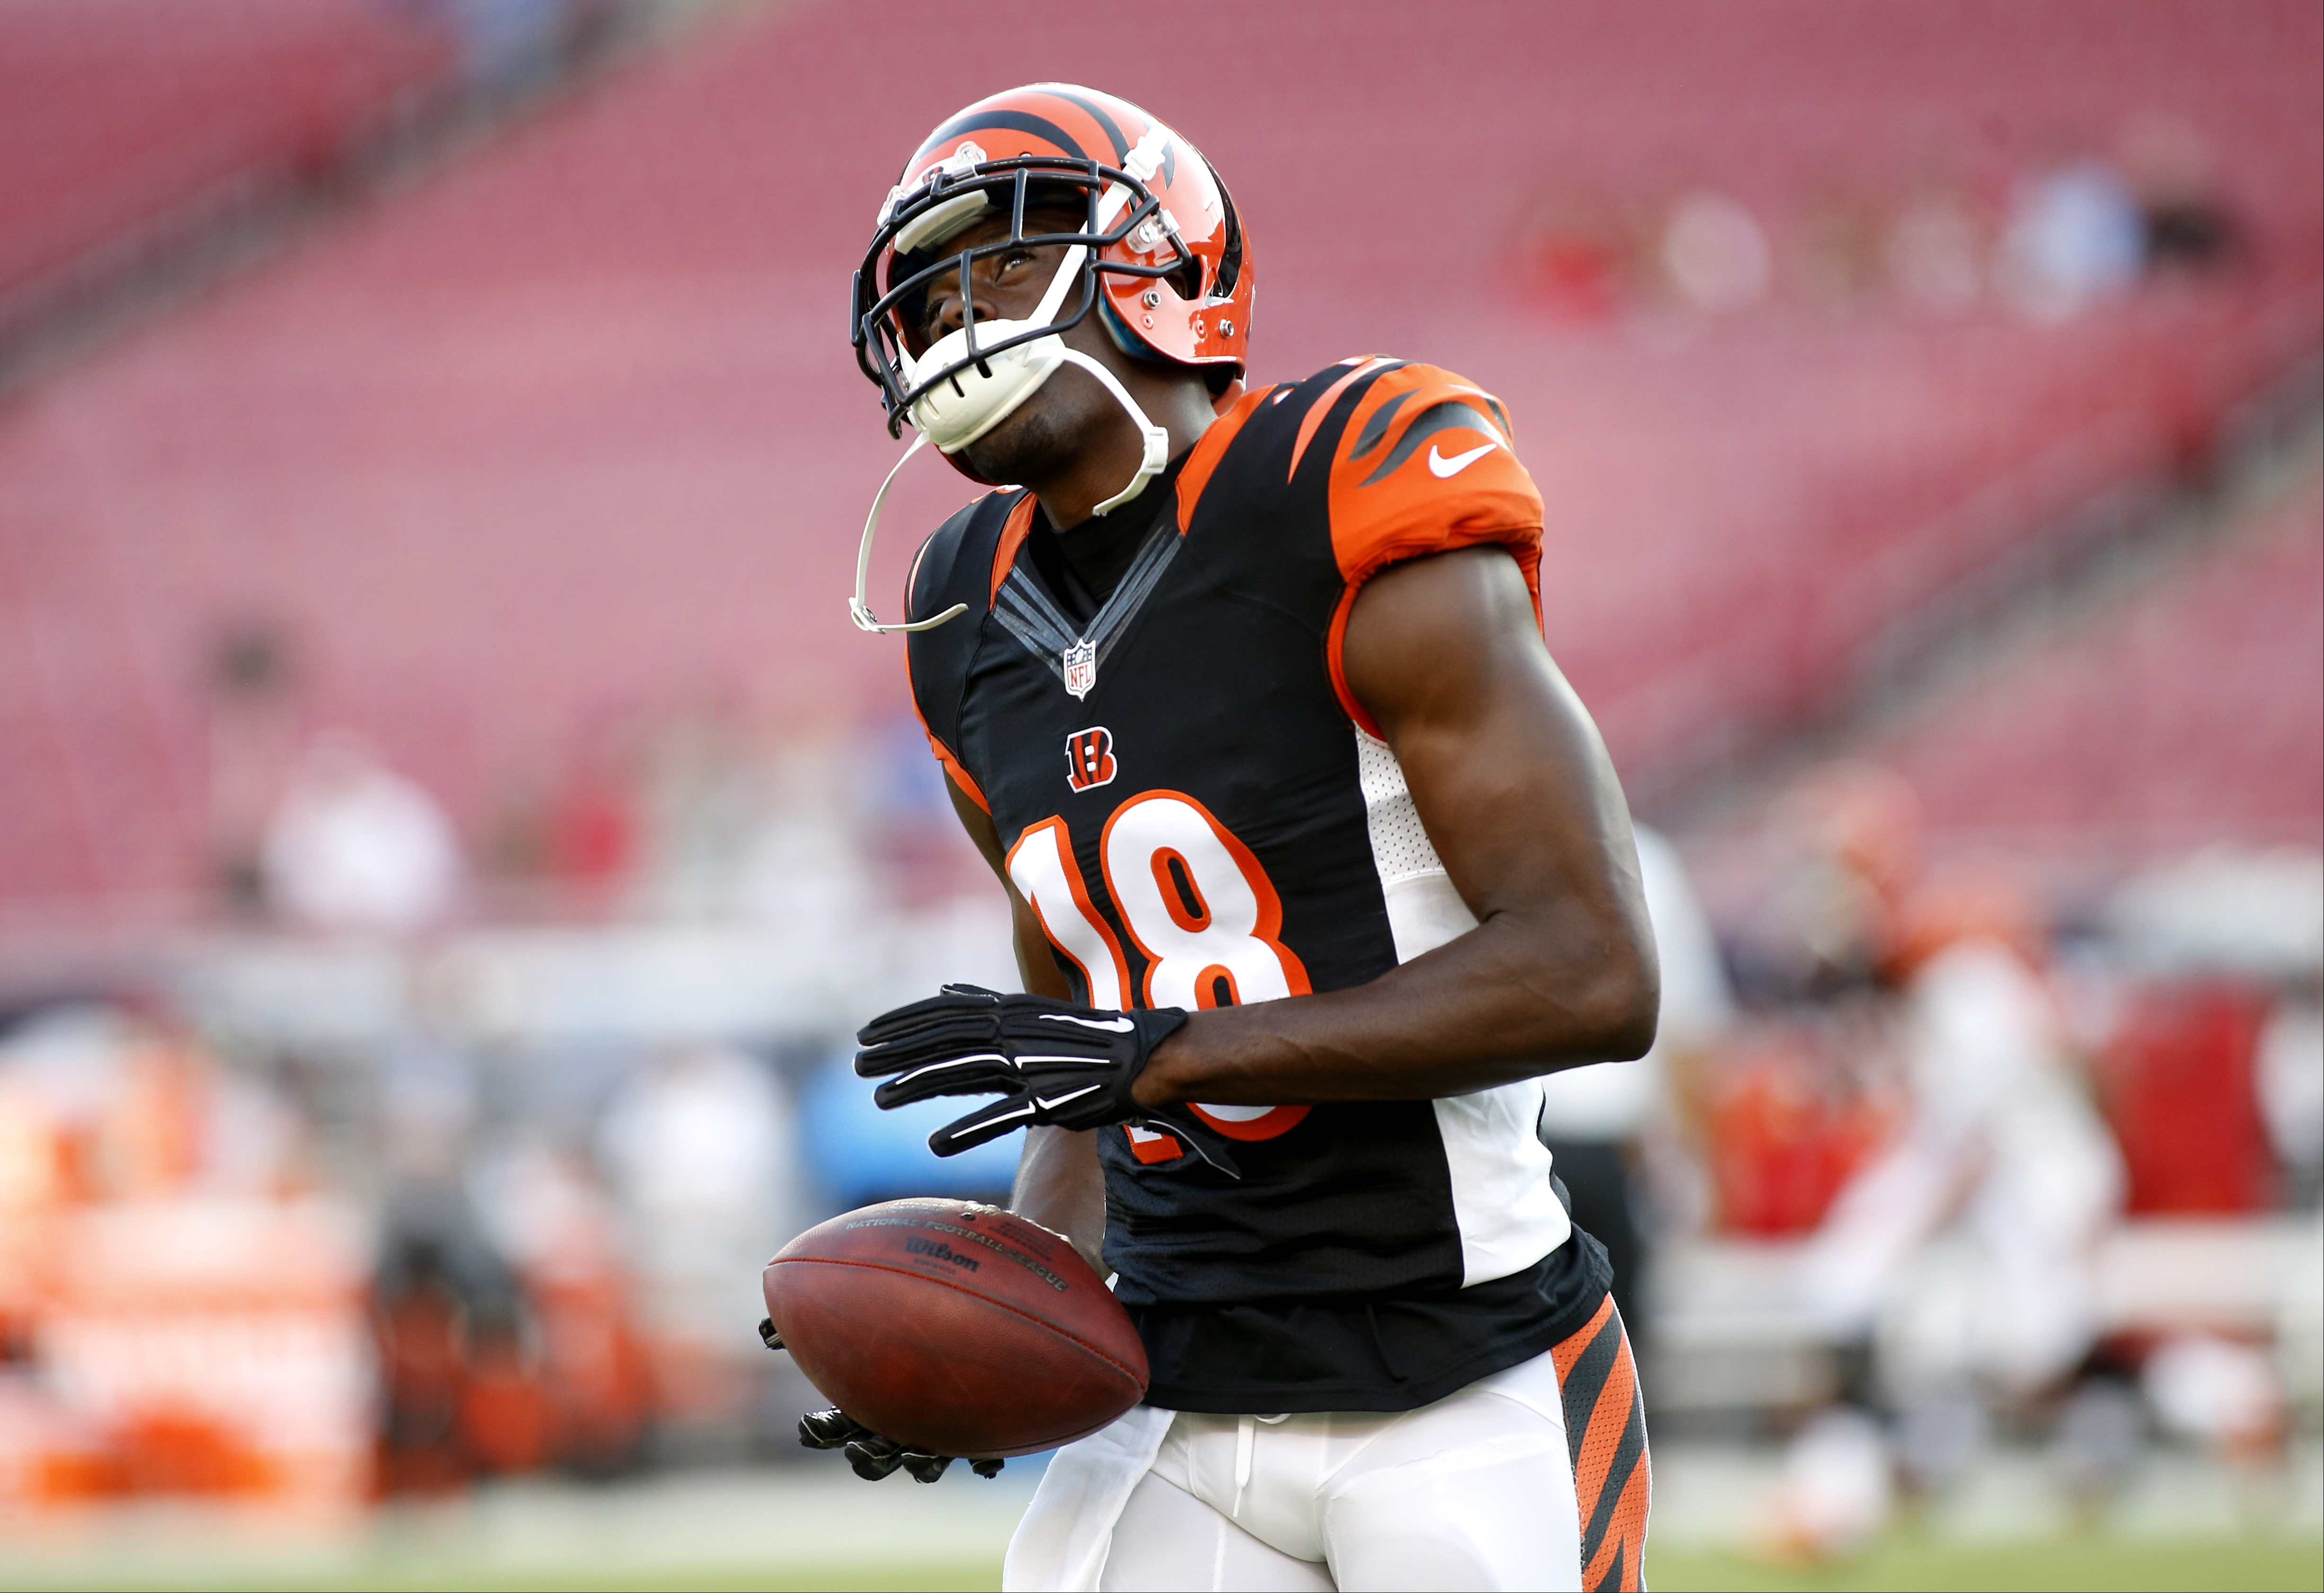 Cincinnati Bengals wide receiver A.J. Green (18) warms up before the start of an NFL preseason football game against the Tampa Bay Buccaneers Monday, Aug. 24, 2015, in Tampa, Fla. (AP Photo/Brian Blanco)